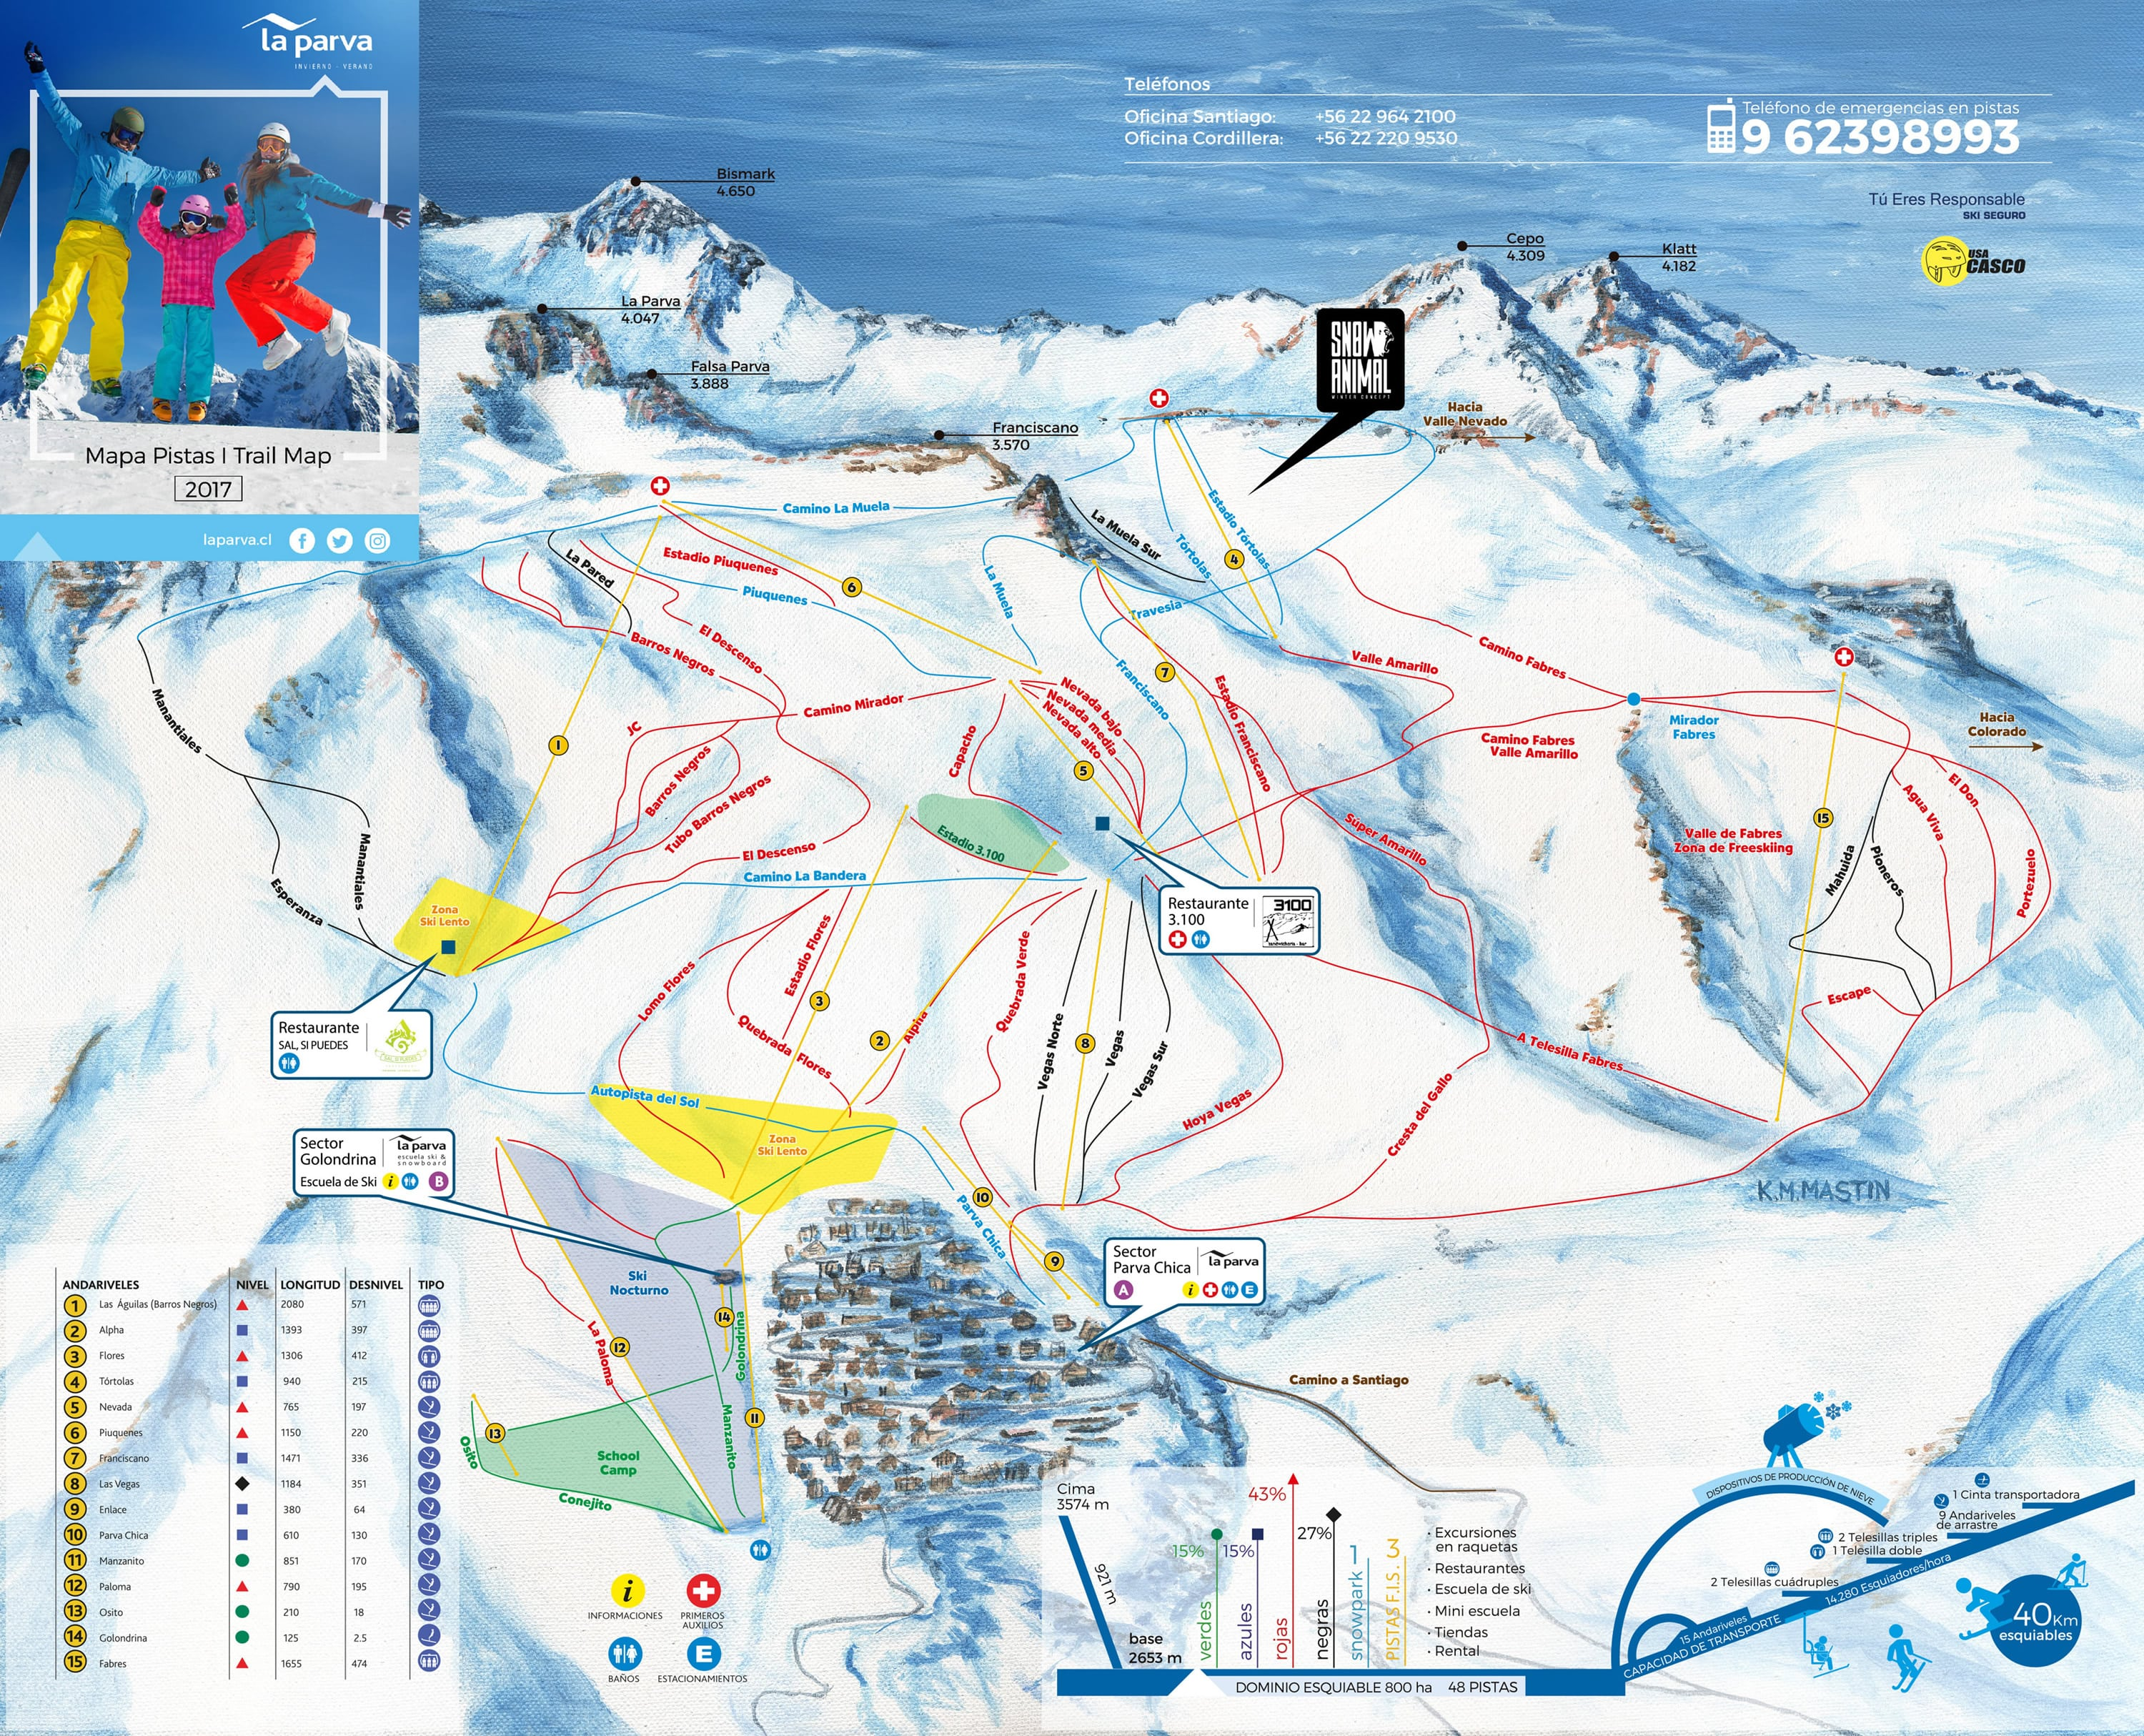 La Parva Piste / Trail Map